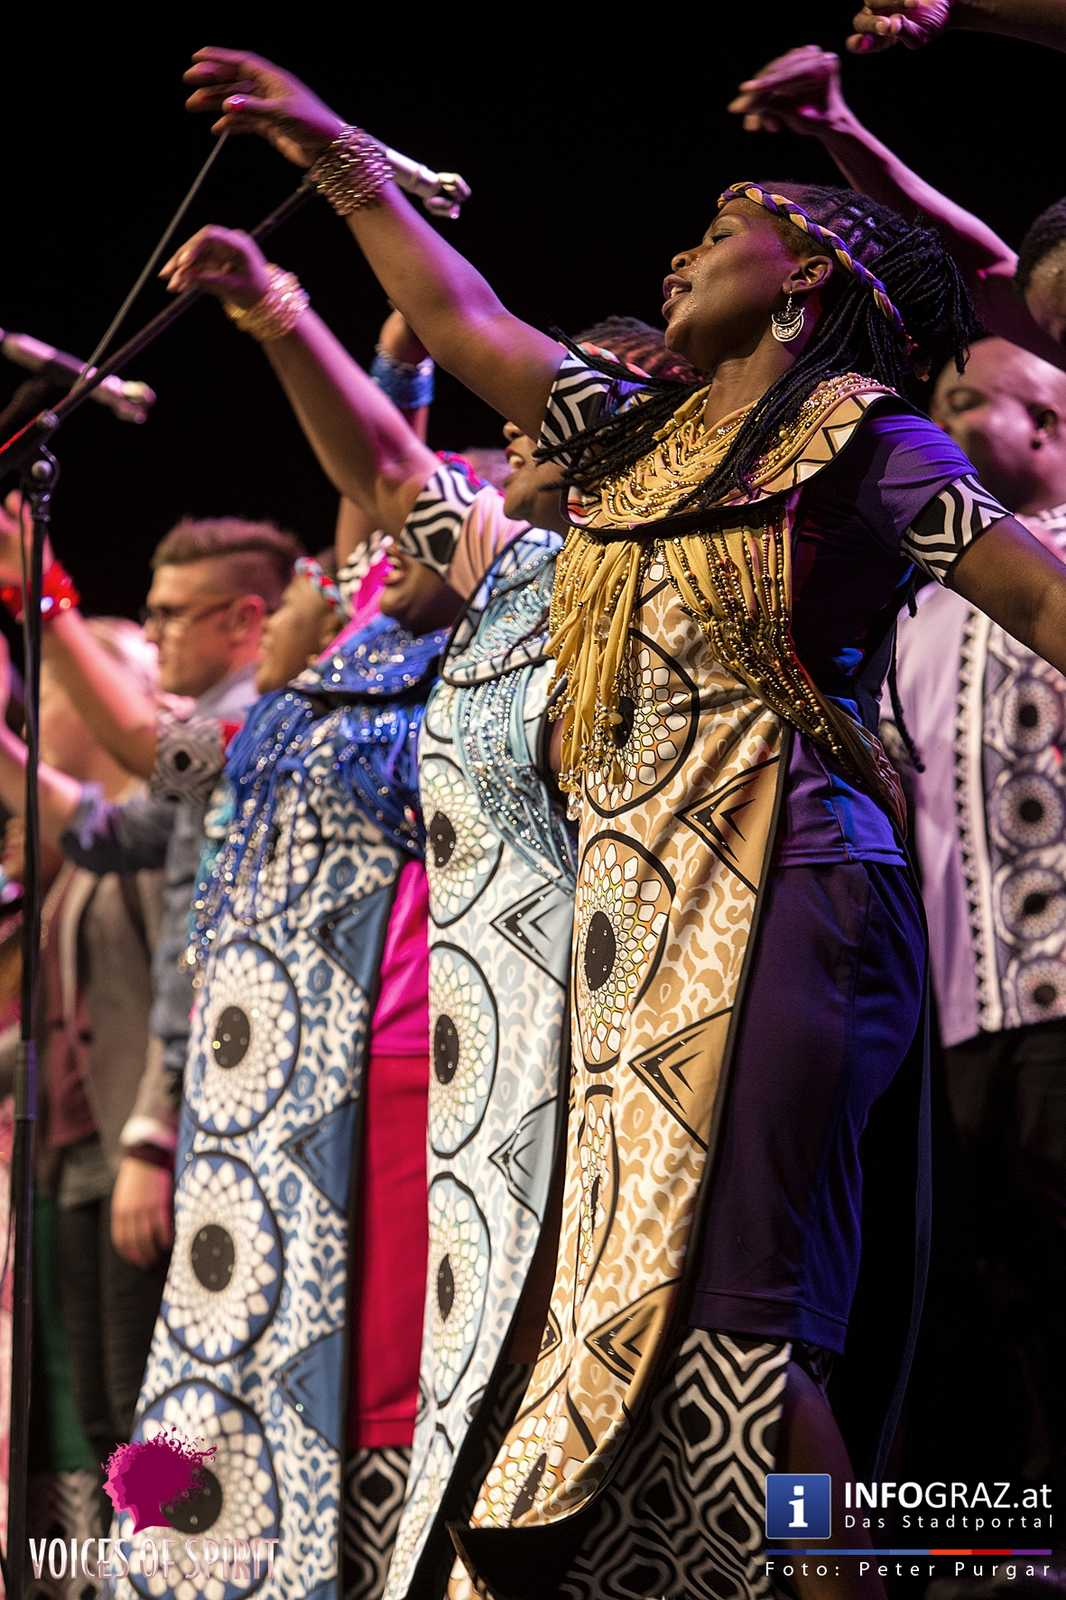 soweto gospel choir internationales chorfestival statdthalle graz voices of spirit eroeffnung festivals 2016 123